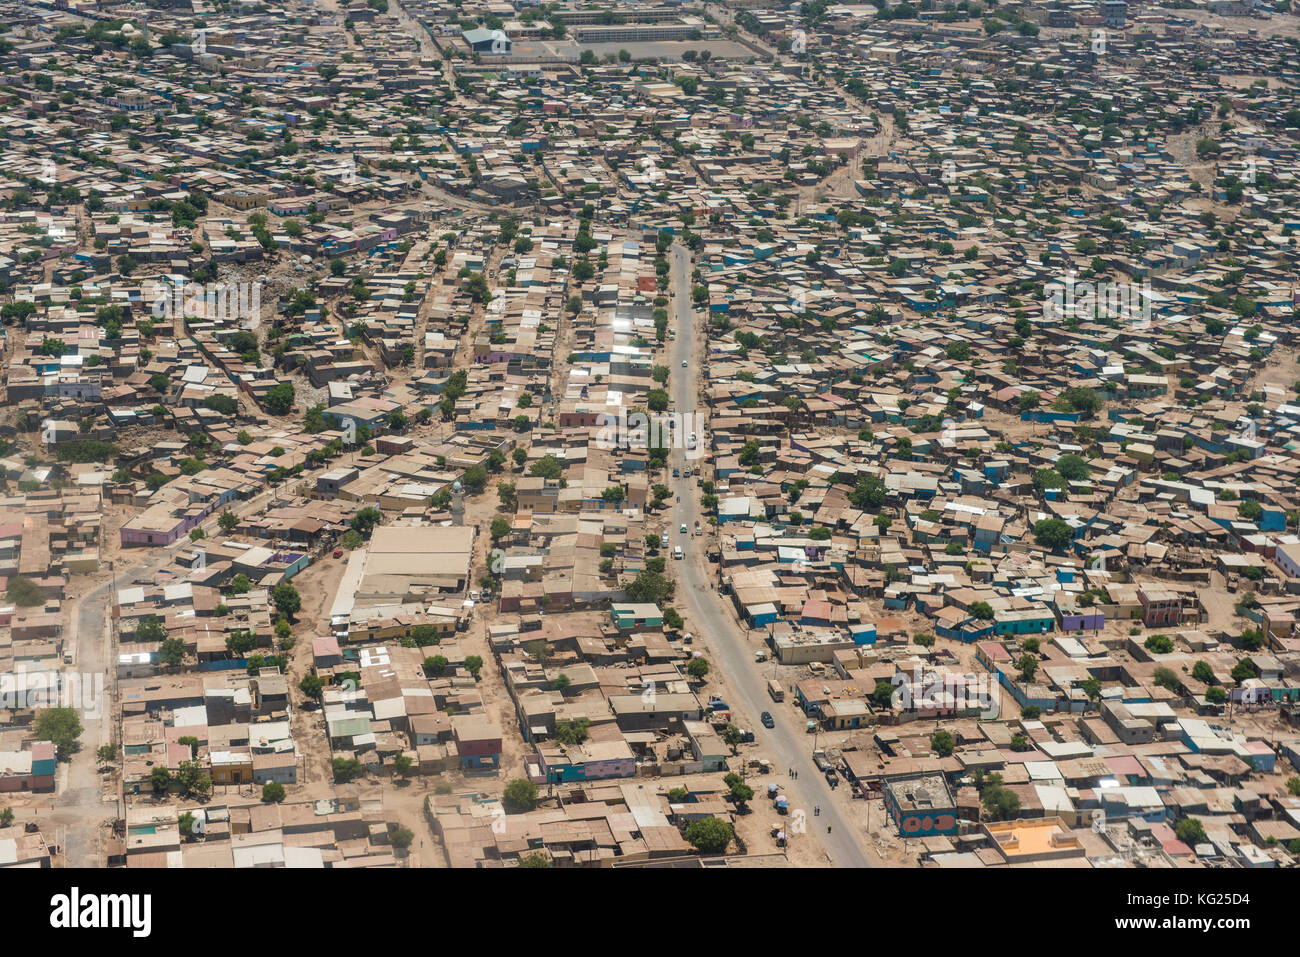 Aerial of Djibouti on the Horn of Africa, Africa - Stock Image